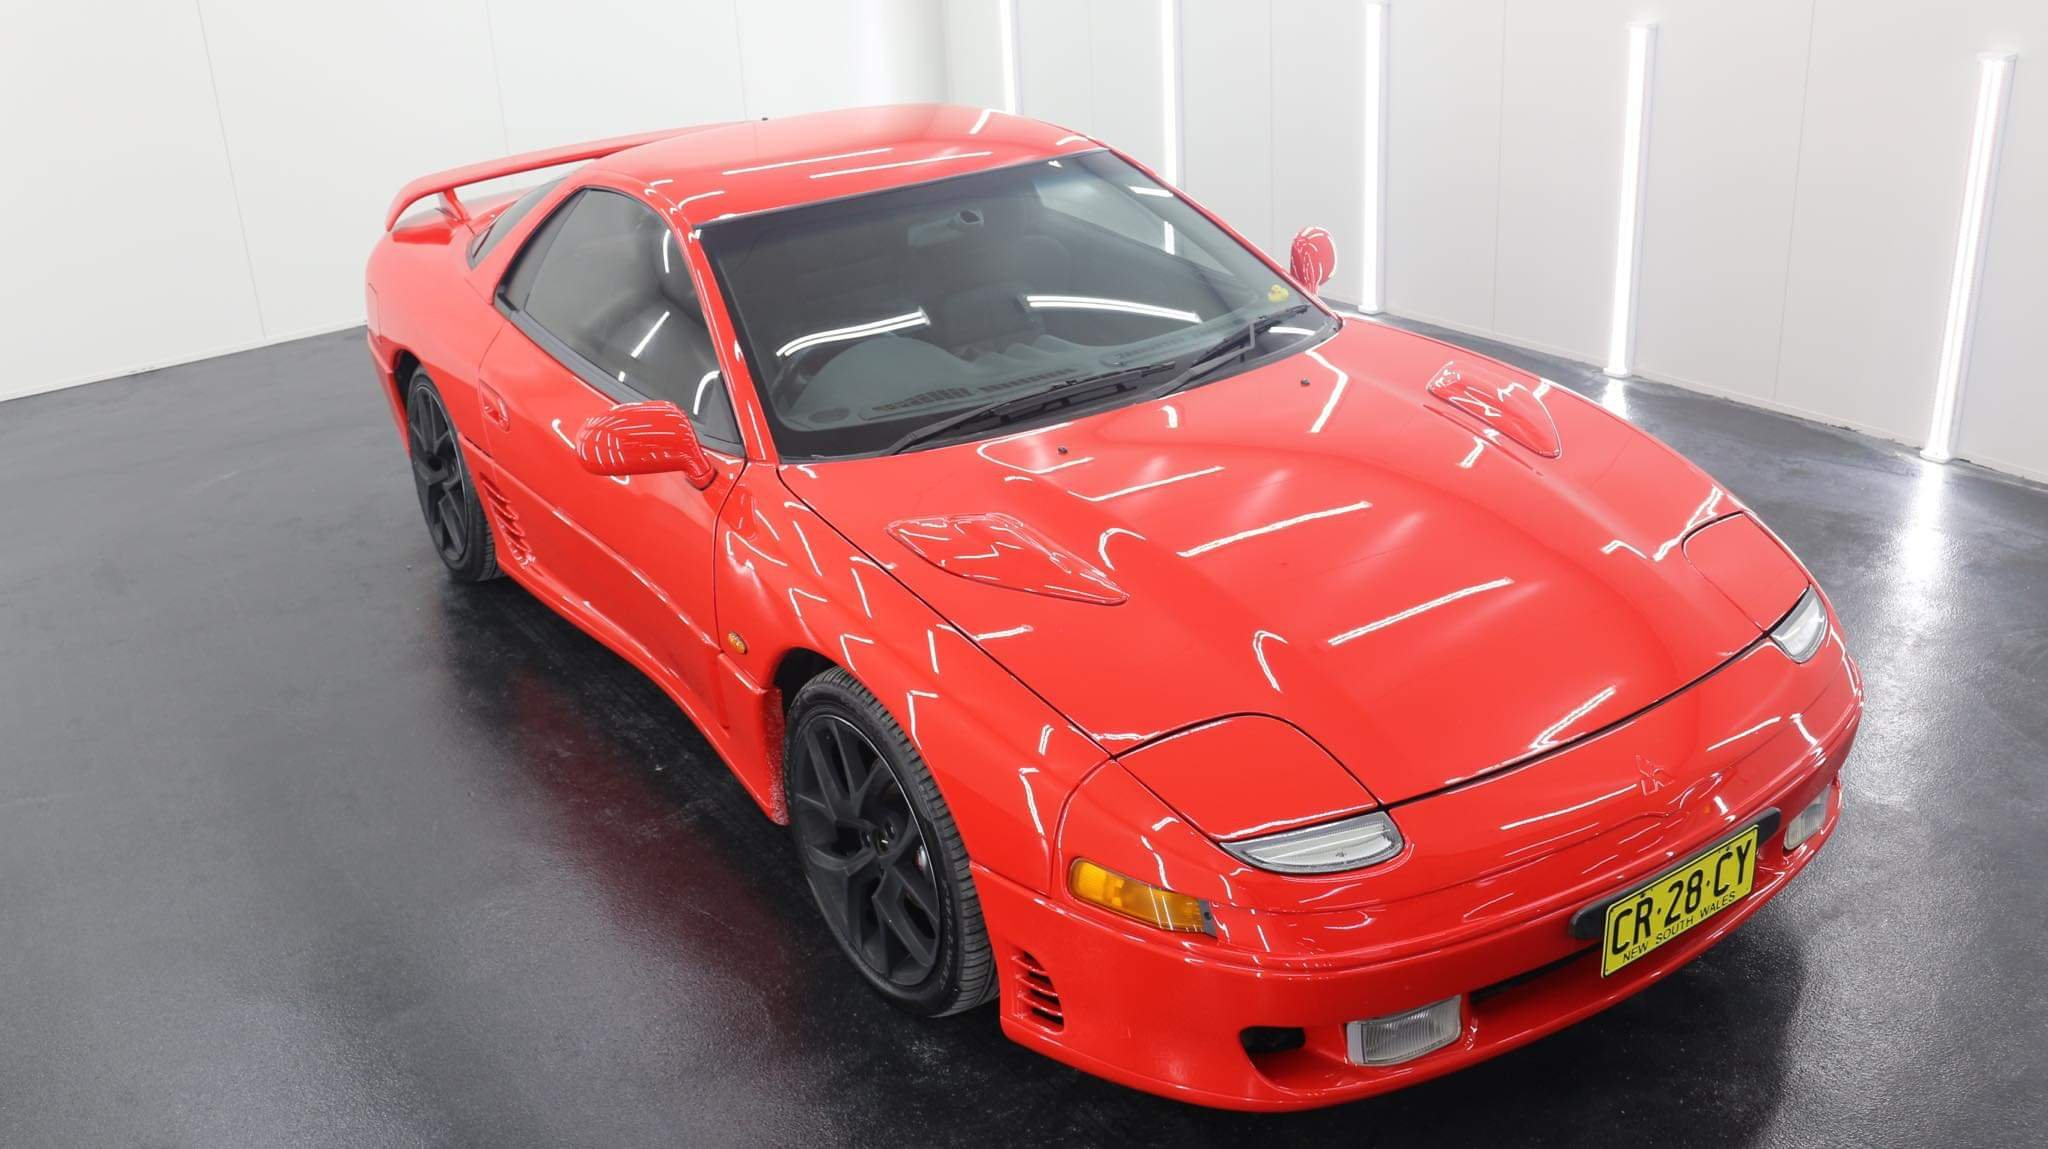 For Sale: 1993 Mitsubishi 3000gt VR4 twin turbo Australian delivered 65 of 117-received_300785610574302.jpeg